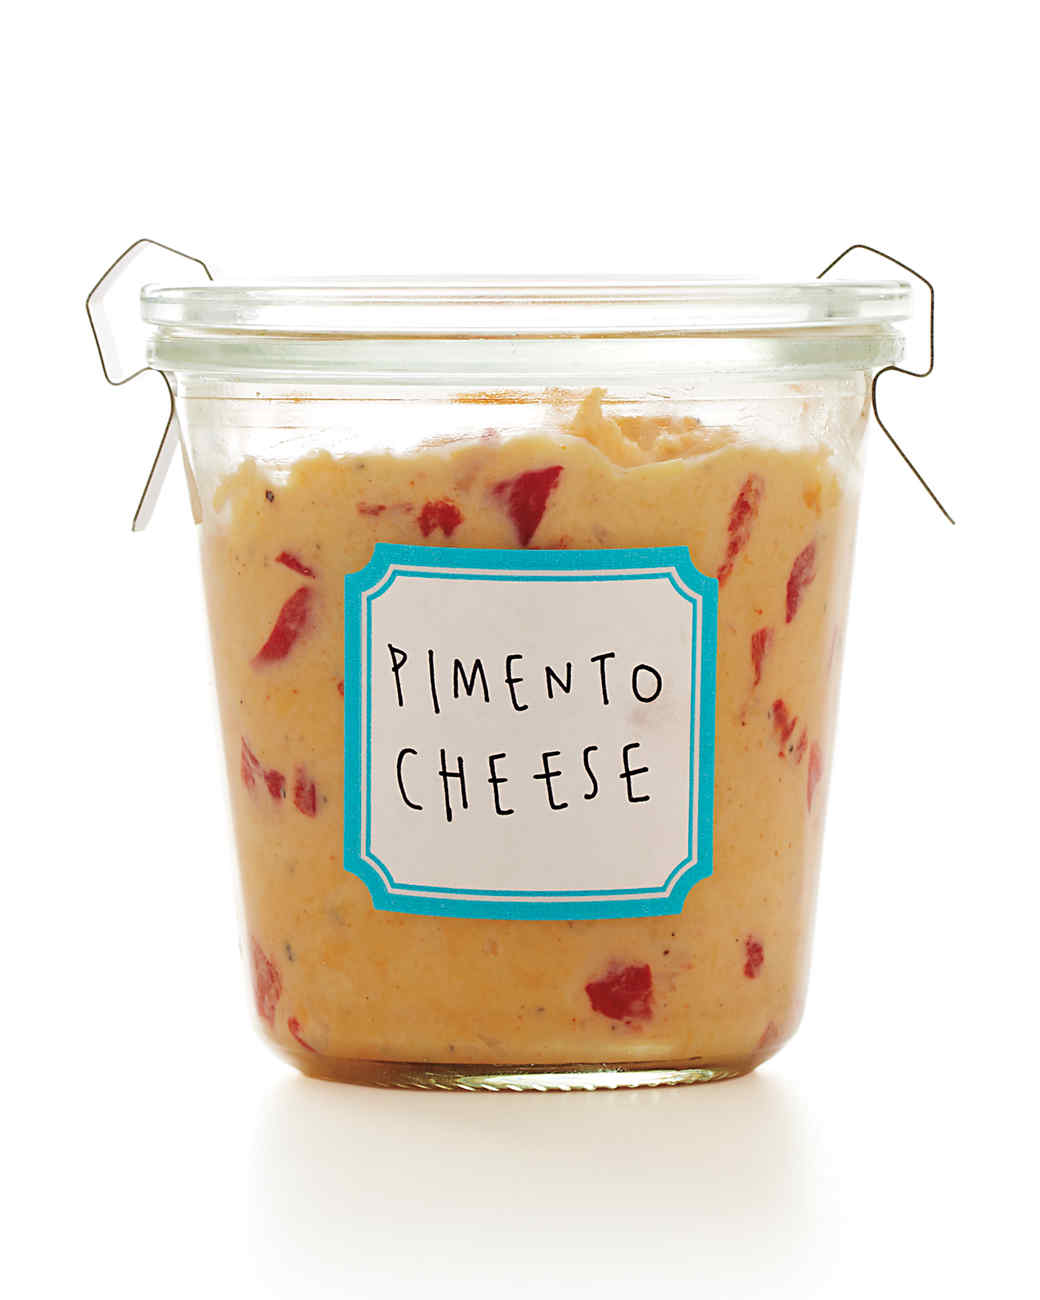 pimento-cheese-057-md109879.jpg